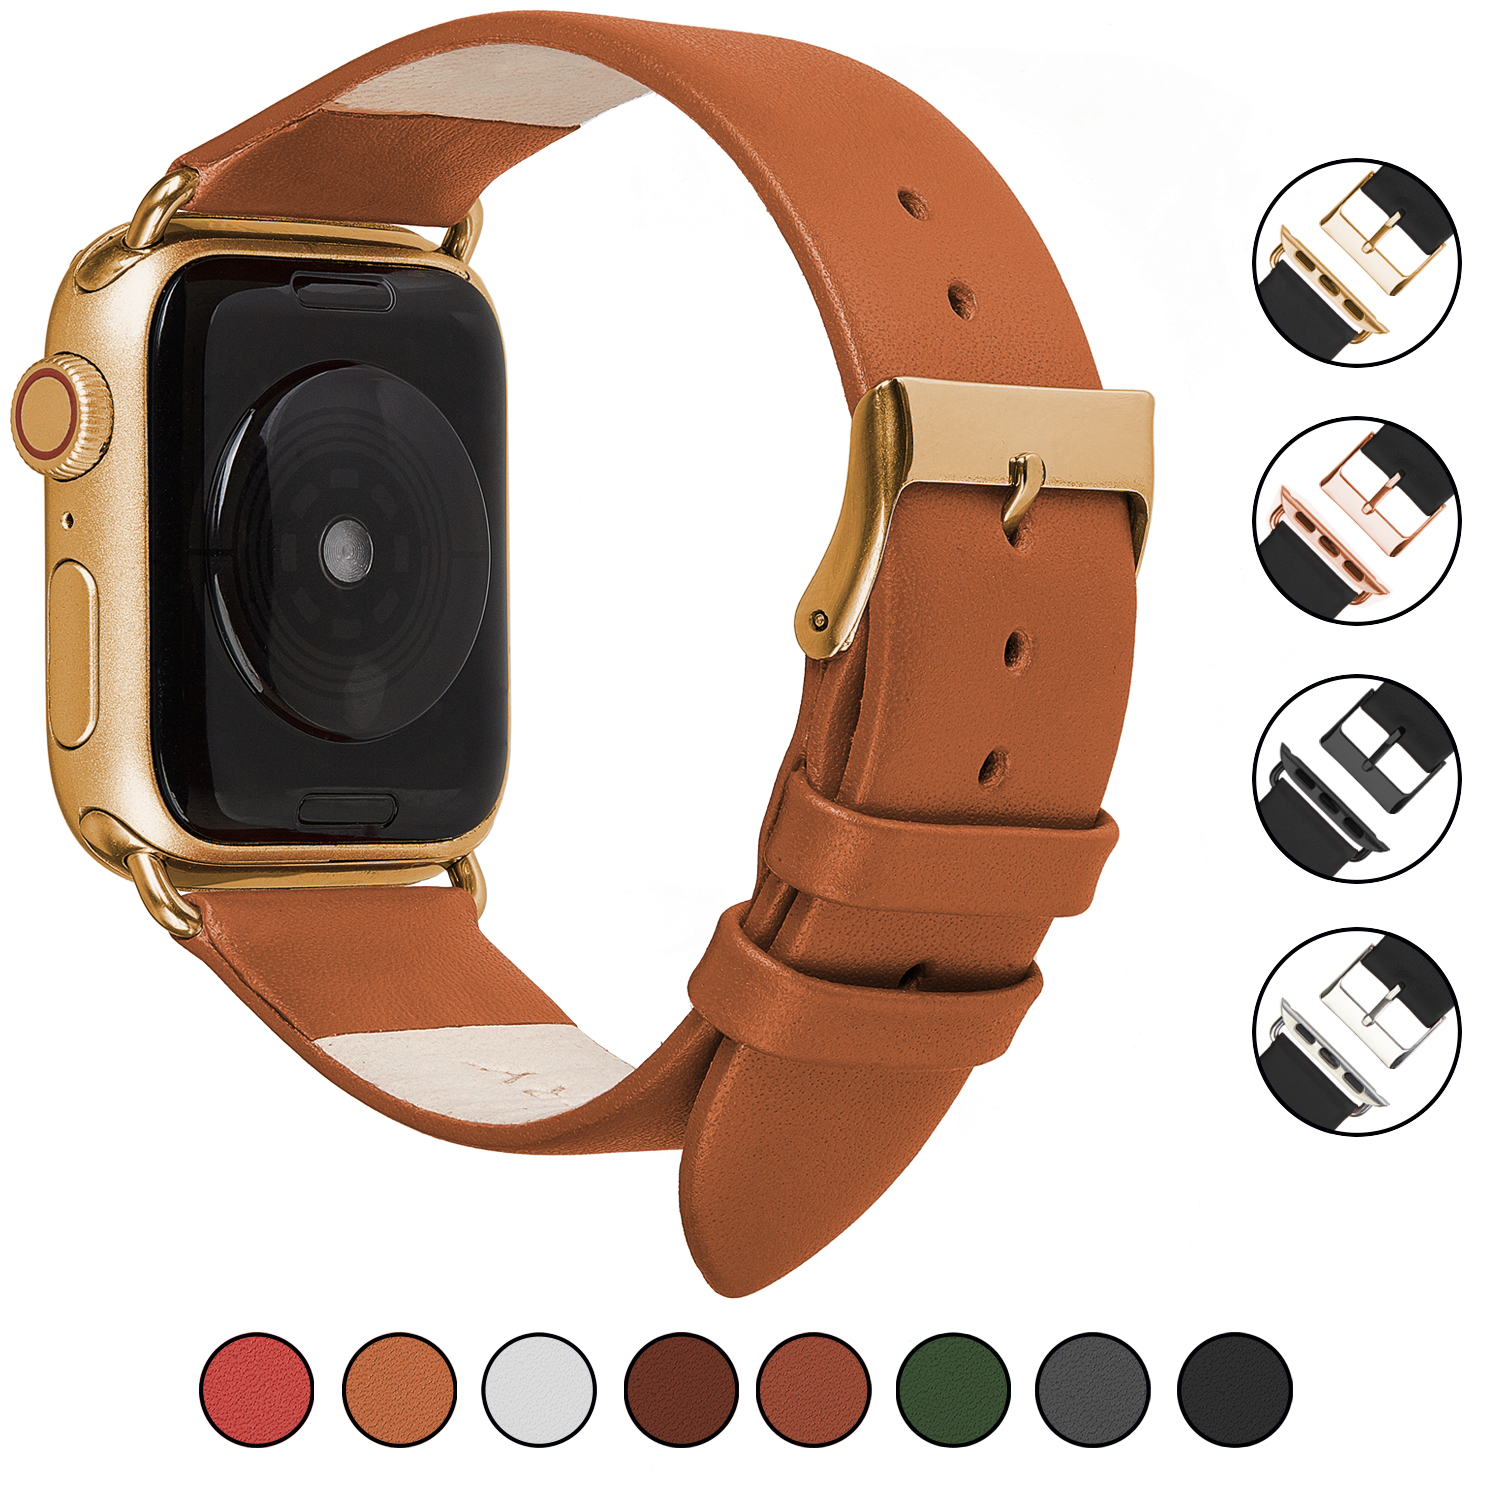 Wildery Leder Armband für Apple Watch Series 1/2/3 und 4/5 in beige